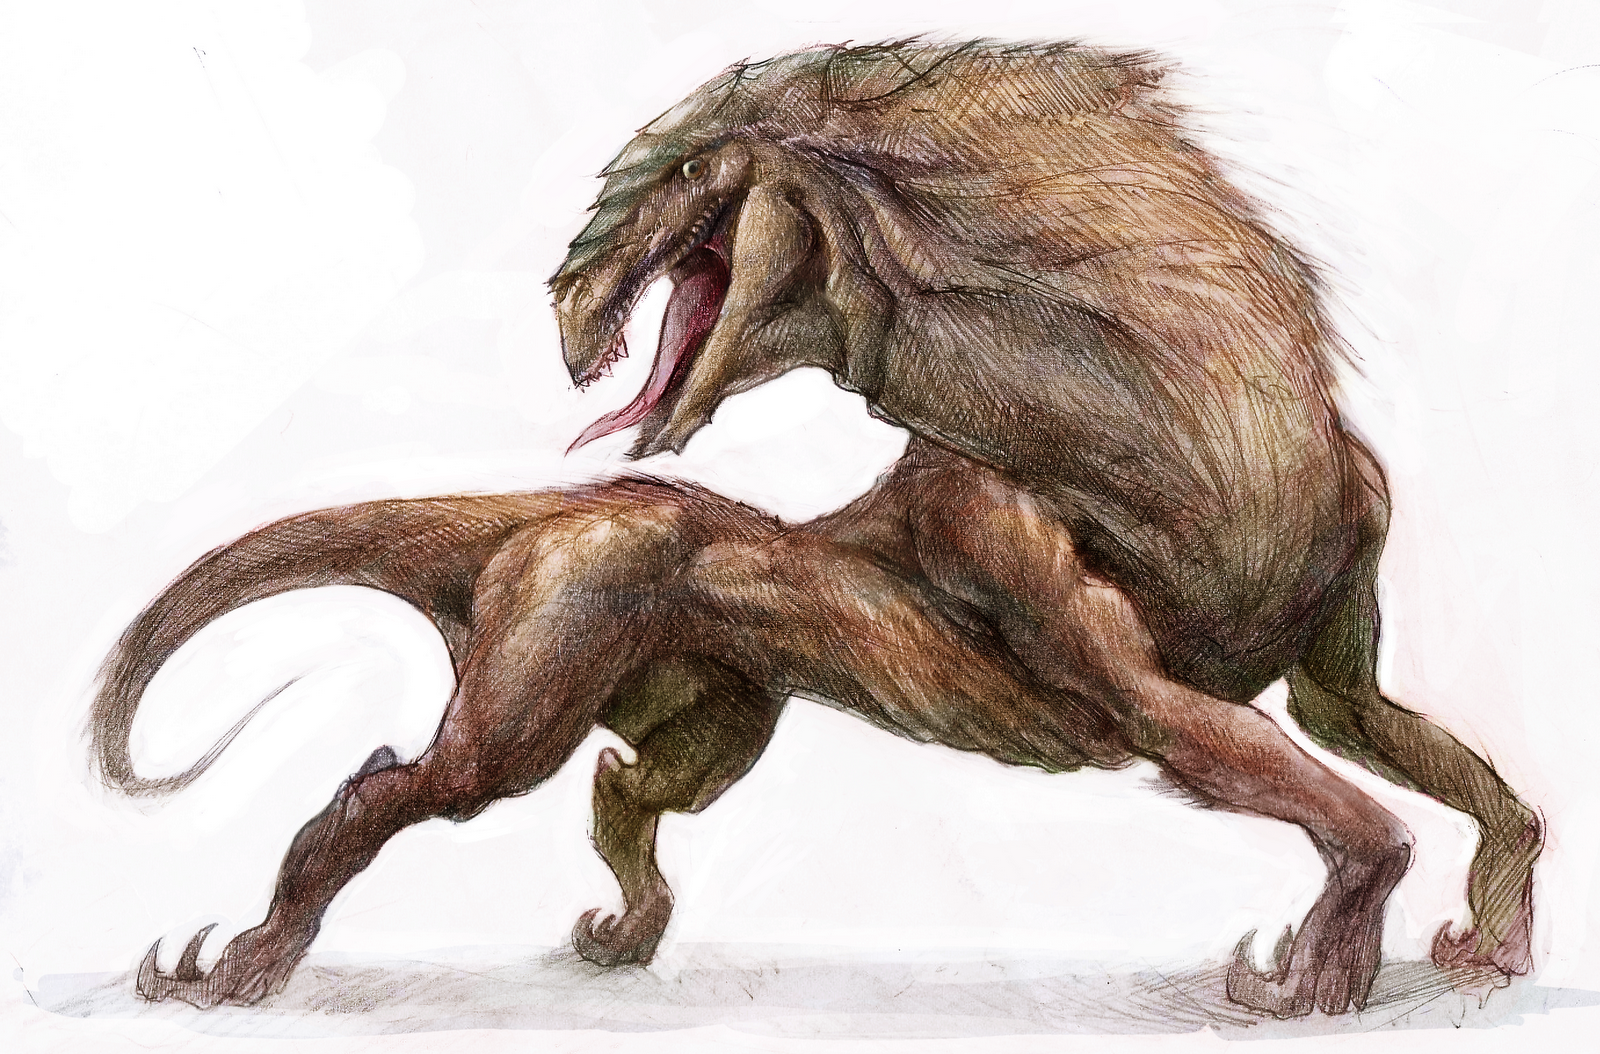 SCP – Containment Breach SCP-087 fauna